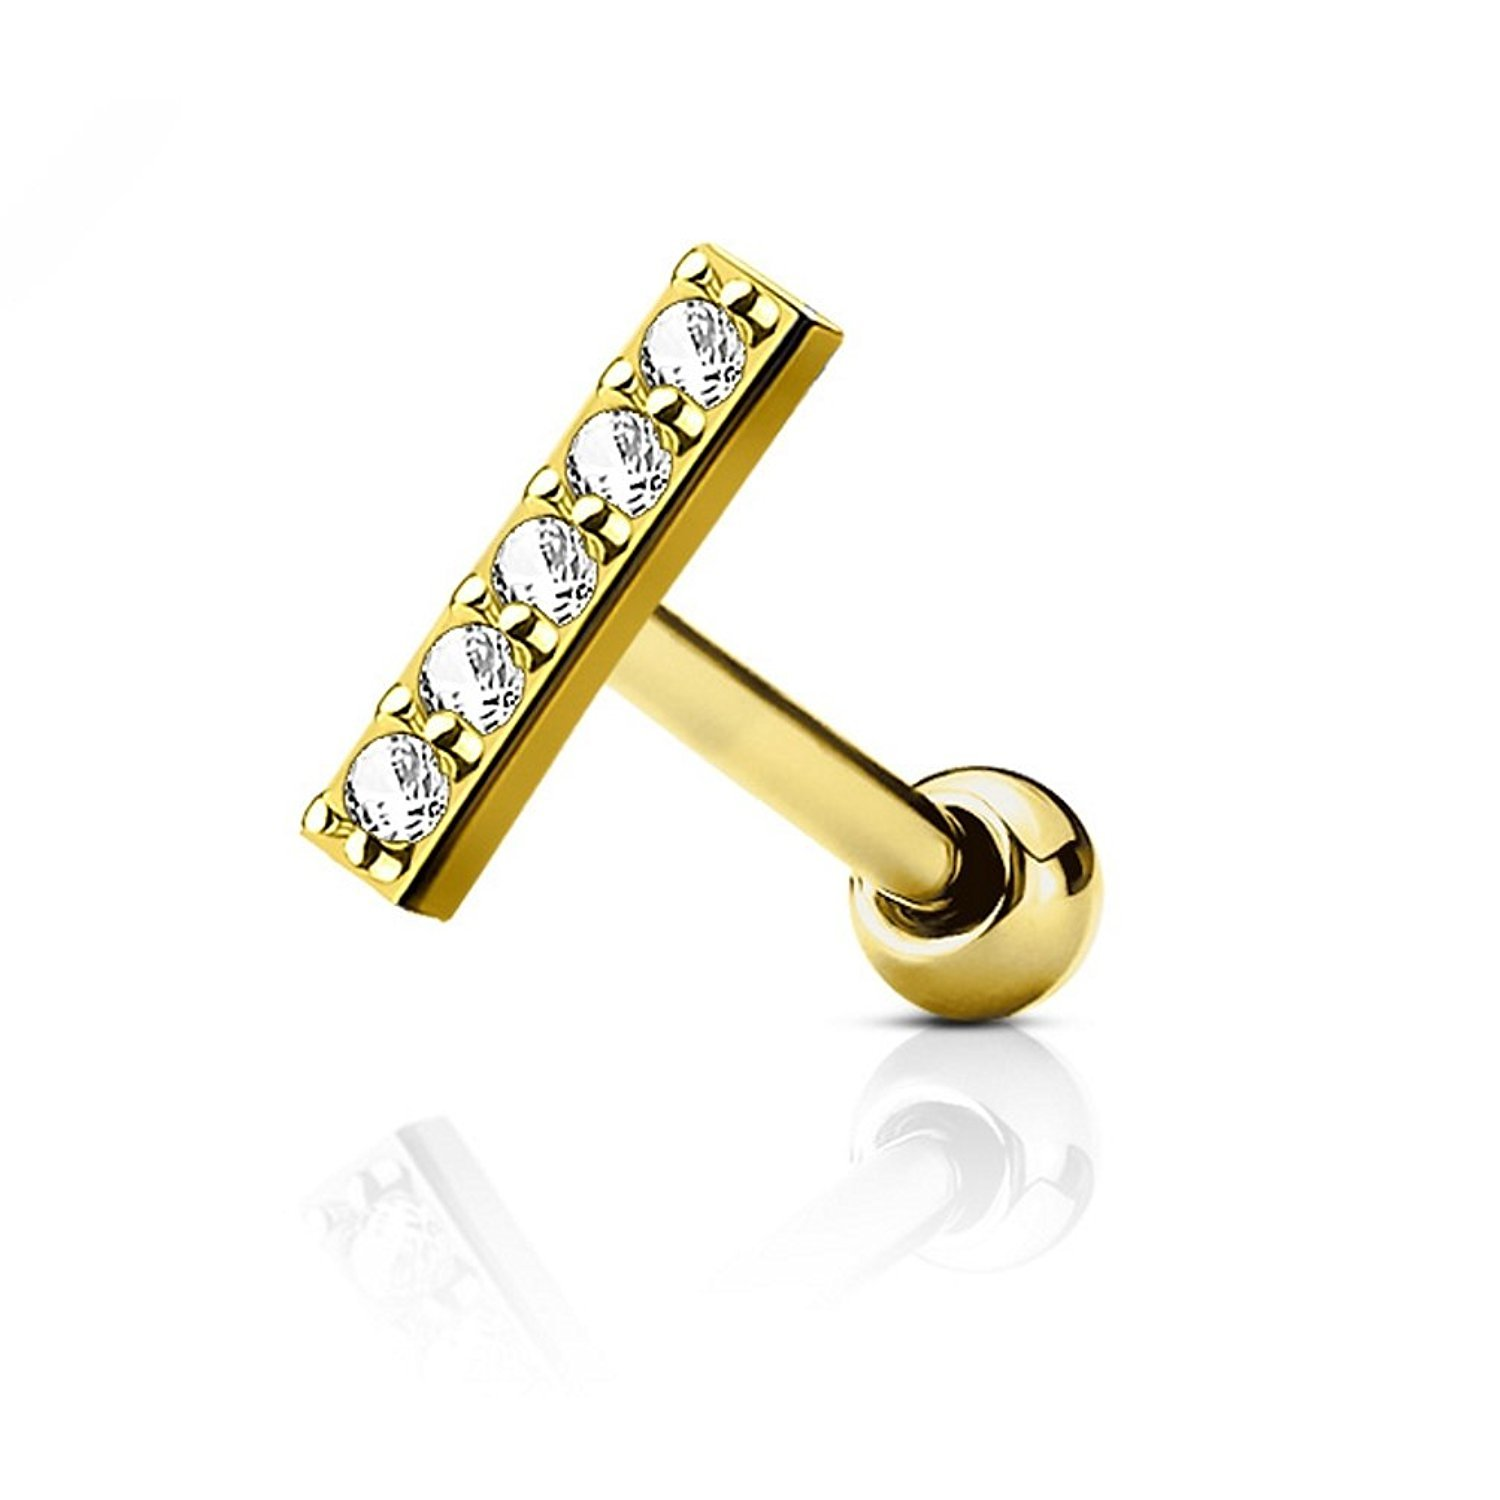 Sold Individually Inspiration Dezigns 16G CZ Lined 9mm Long Bar Cartilage//Tragus Barbell Stud